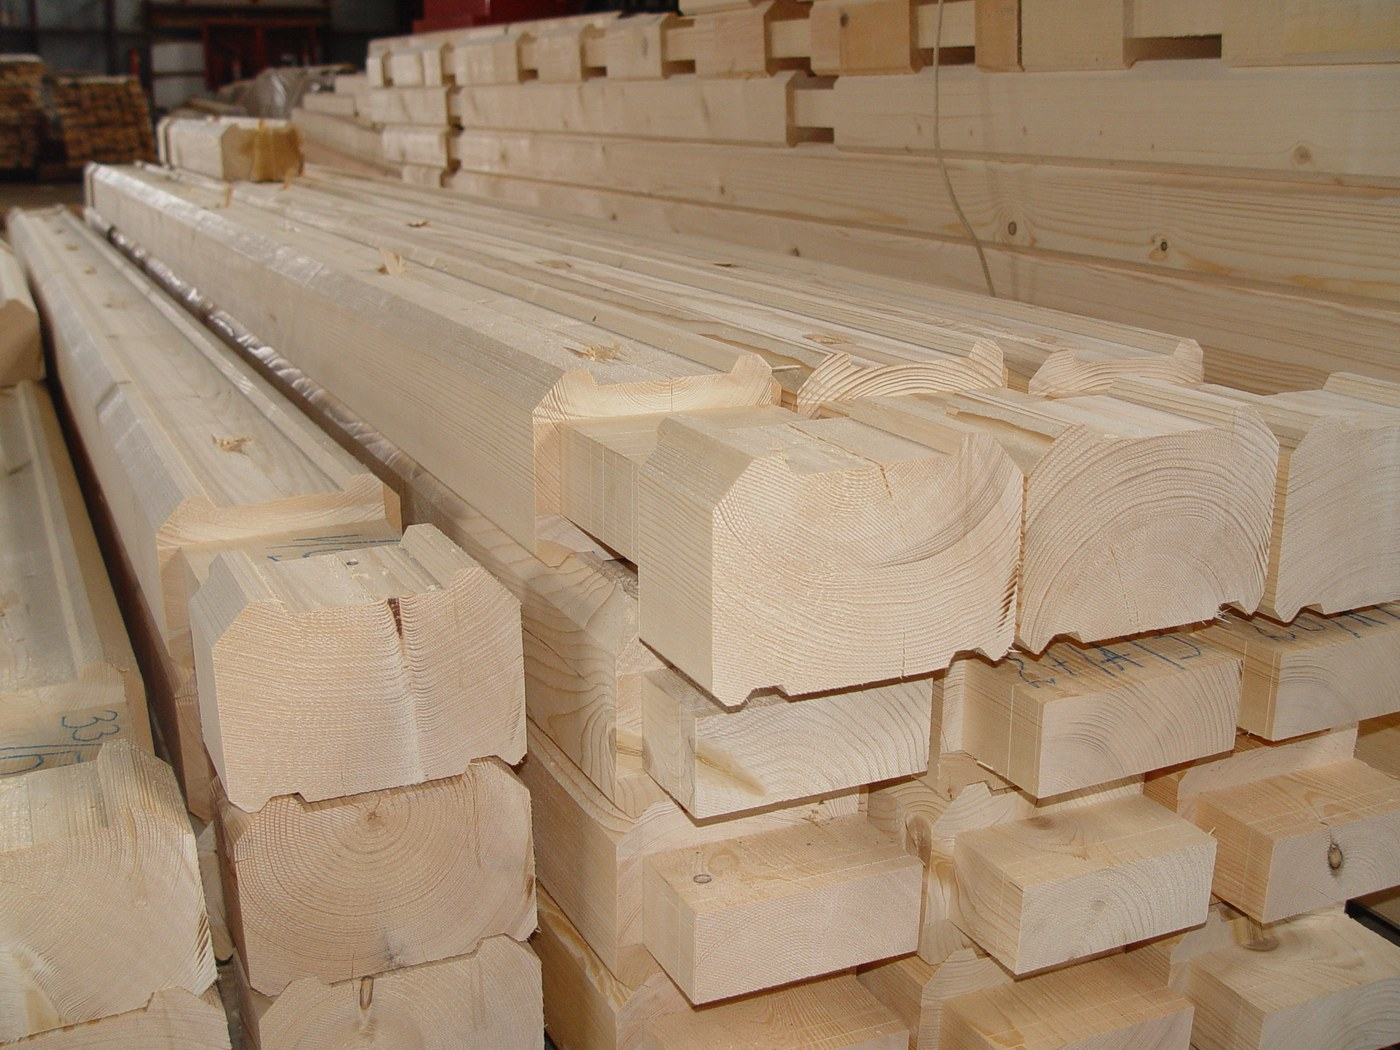 Production of wooden houses